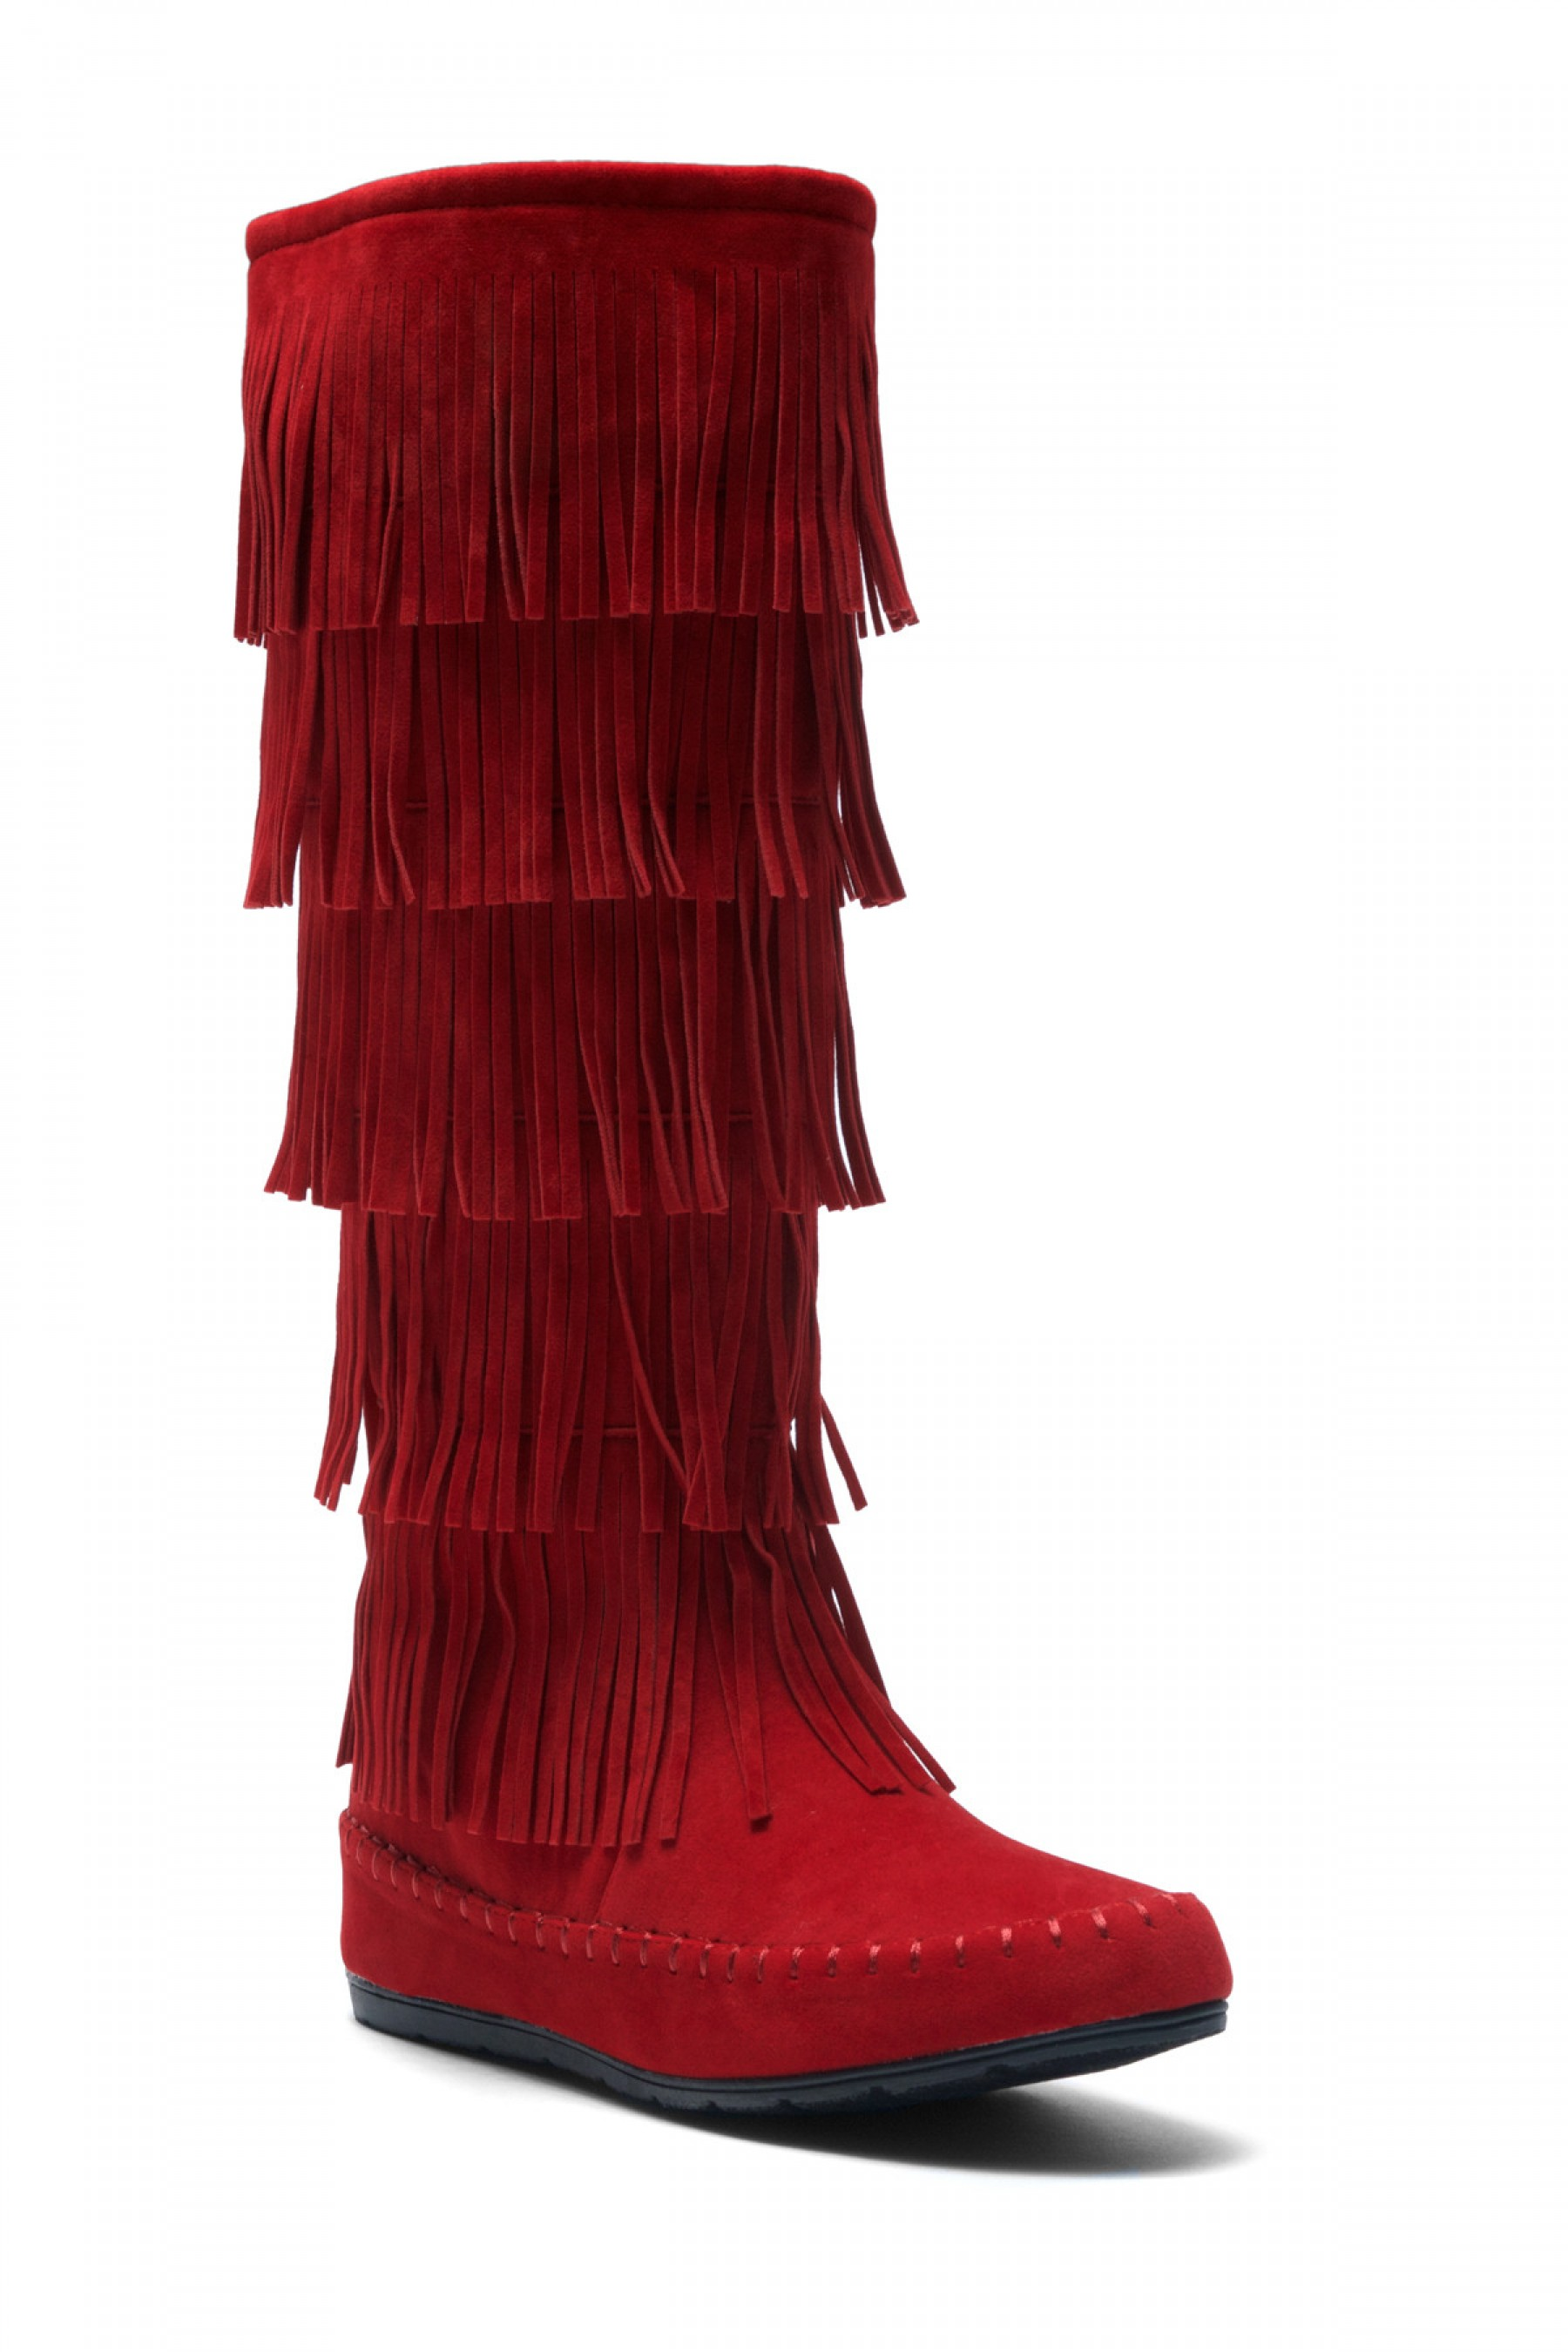 moccasin boots womenu0027s burgundy maddyyee faux suede knee high fringed five-layer moccasin  boots cqxbubw